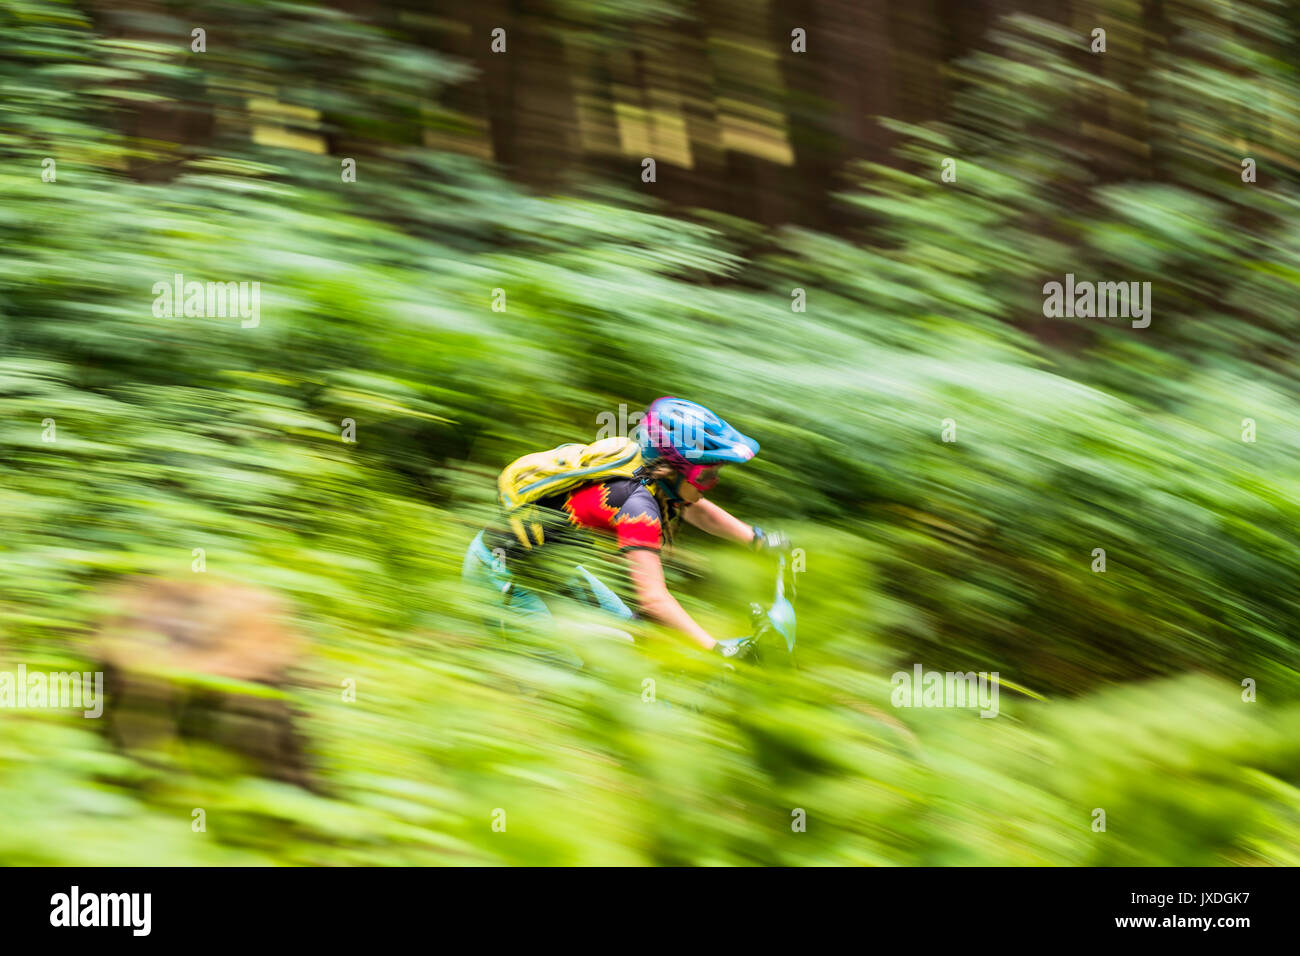 Innerleithen, Peebles, Scottish Borders, UK. 13th August 2017. Mountain bikers compete in the POC Scottish Enduro Series in the Tweed Valley. - Stock Image